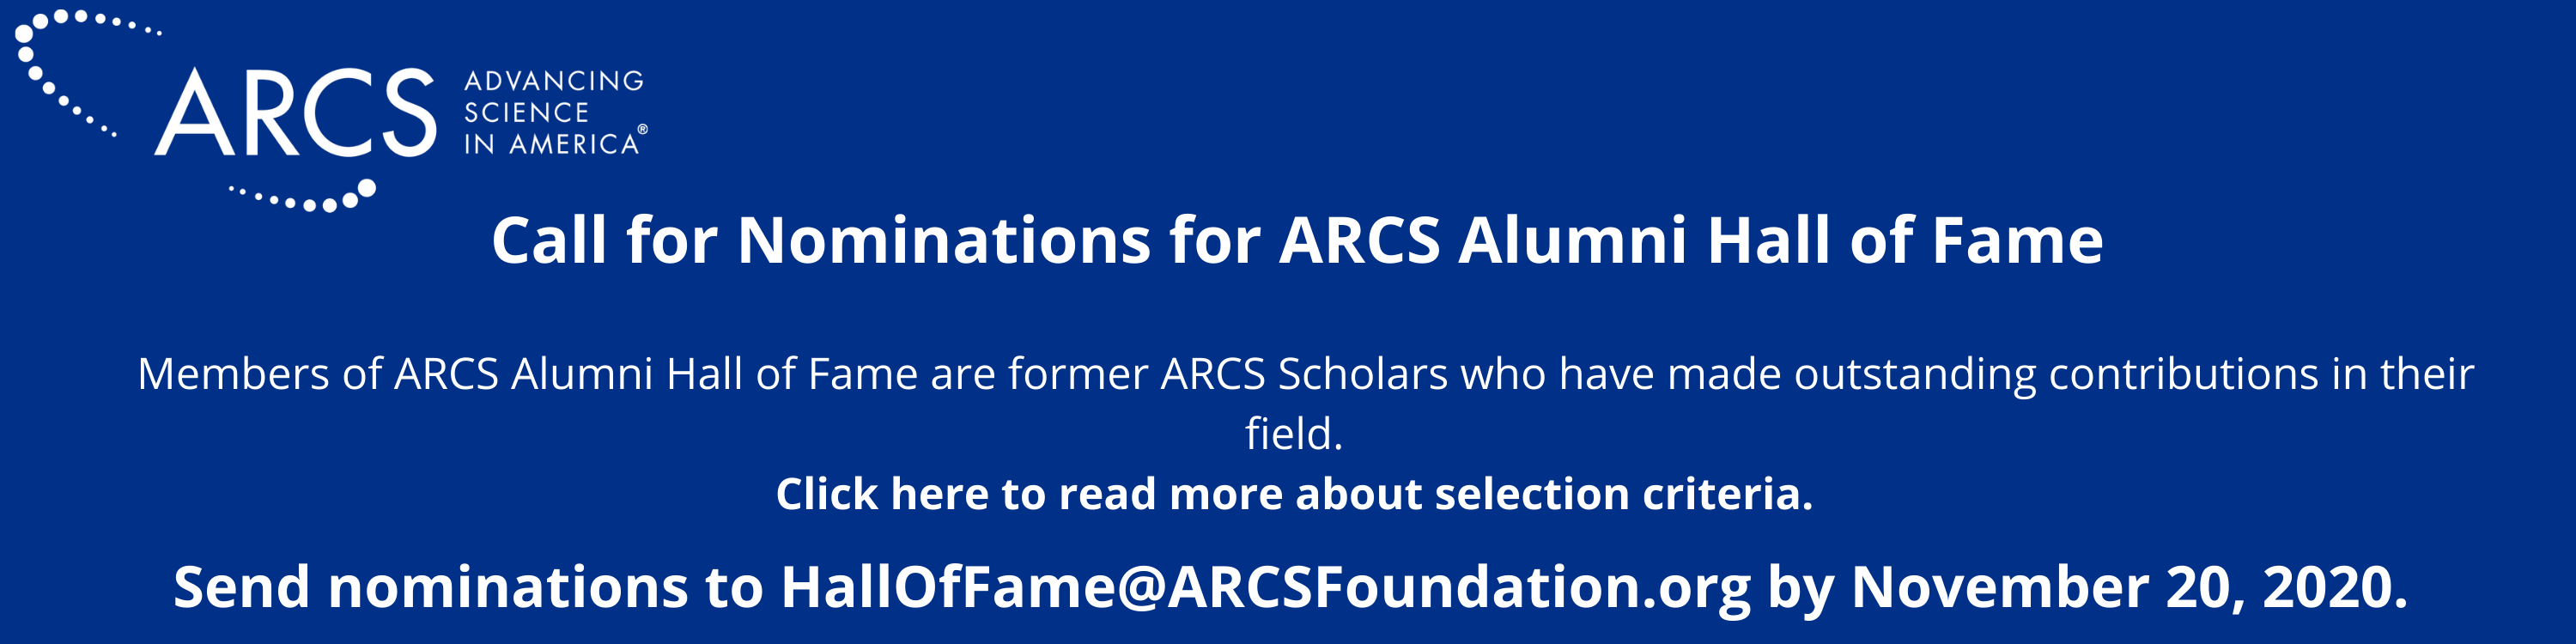 ARCS Foundation Hall of Fame